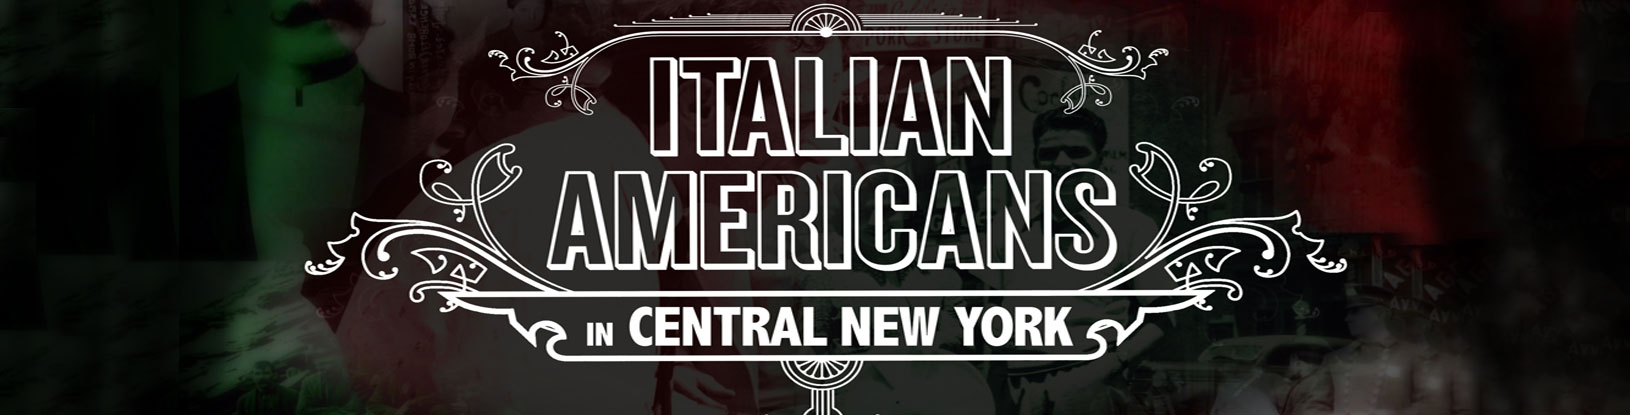 Italian Americans in Central New York